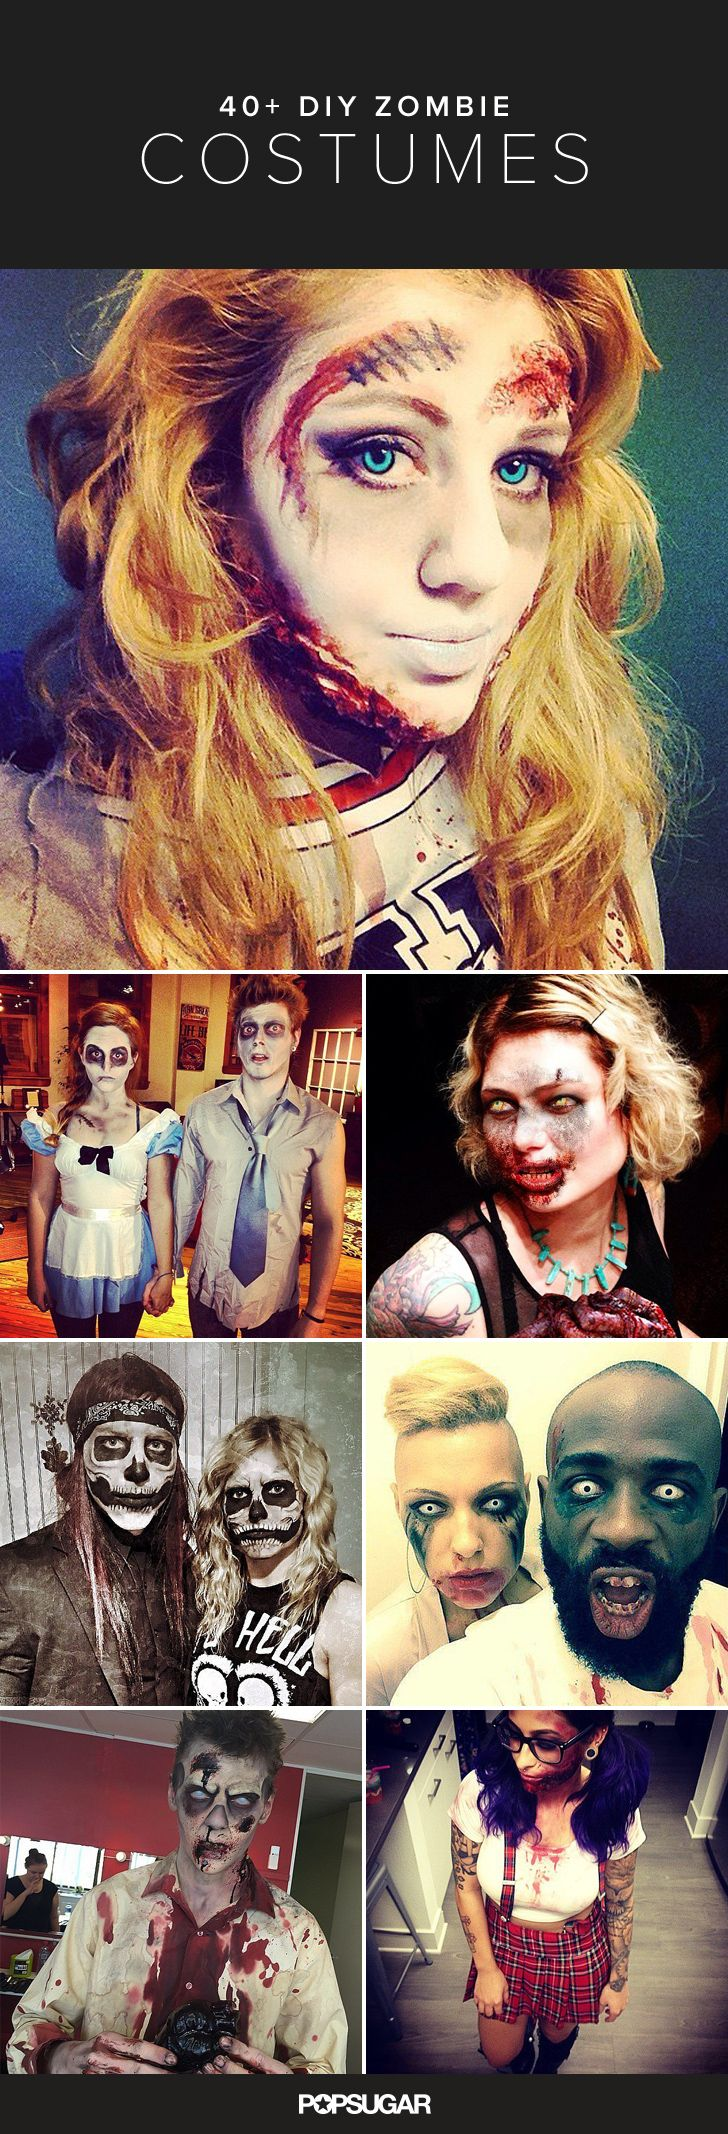 43 Halloween DIY Zombie Costumes That Are Completely Petrifying